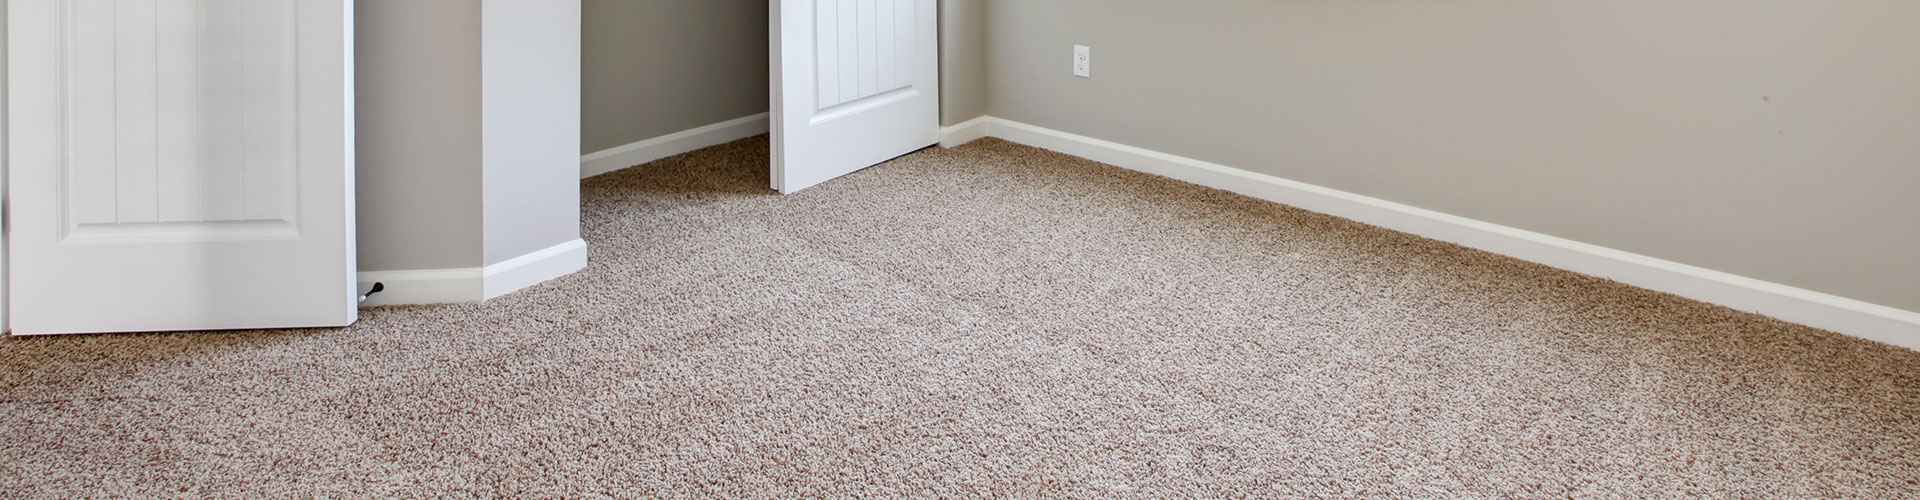 How Much Does Carpet Cleaning Cost 2020 Guide Service